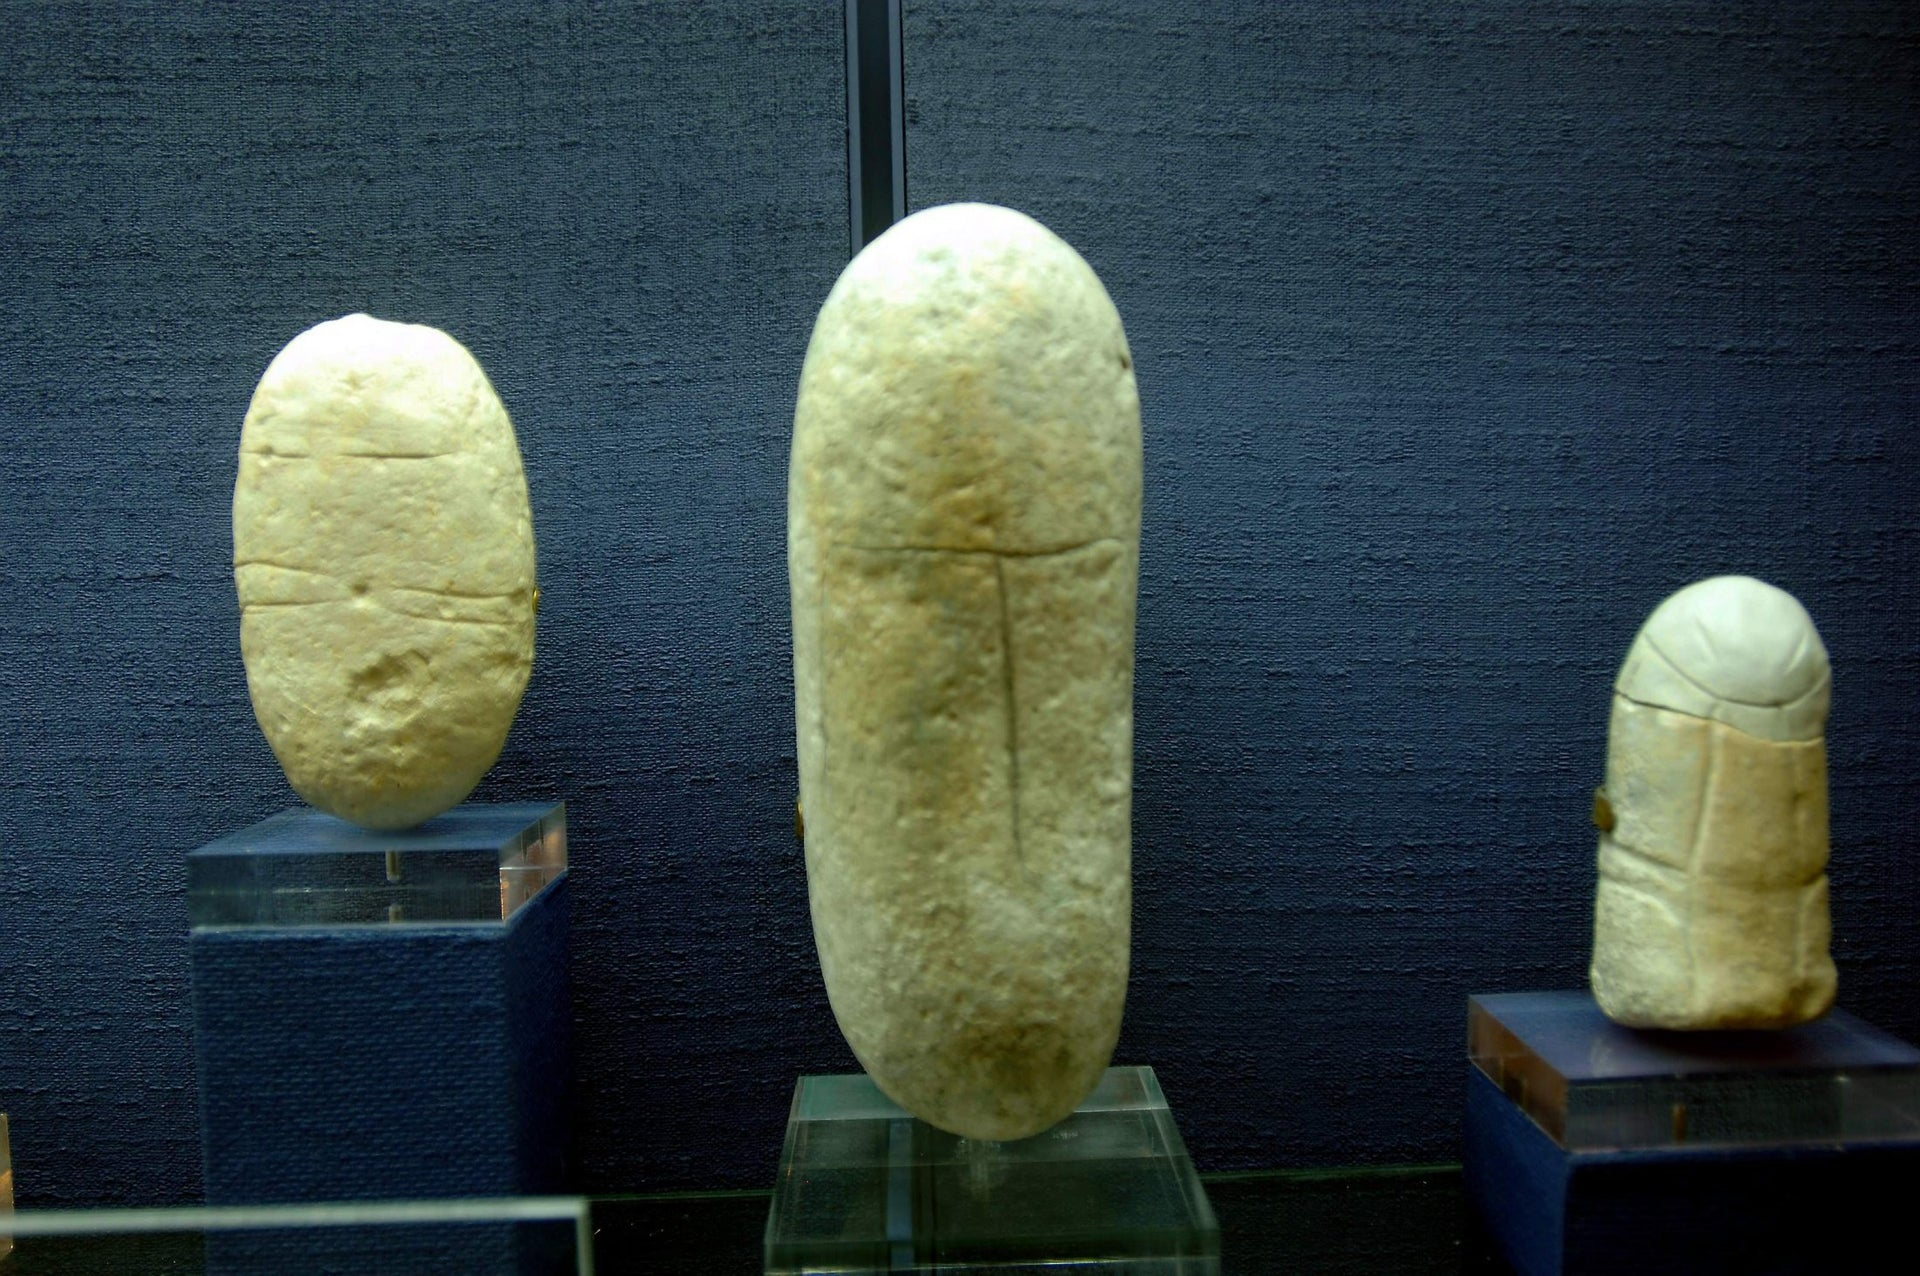 Ancient figurines believed to reoresent devotion to gods other than YHWH